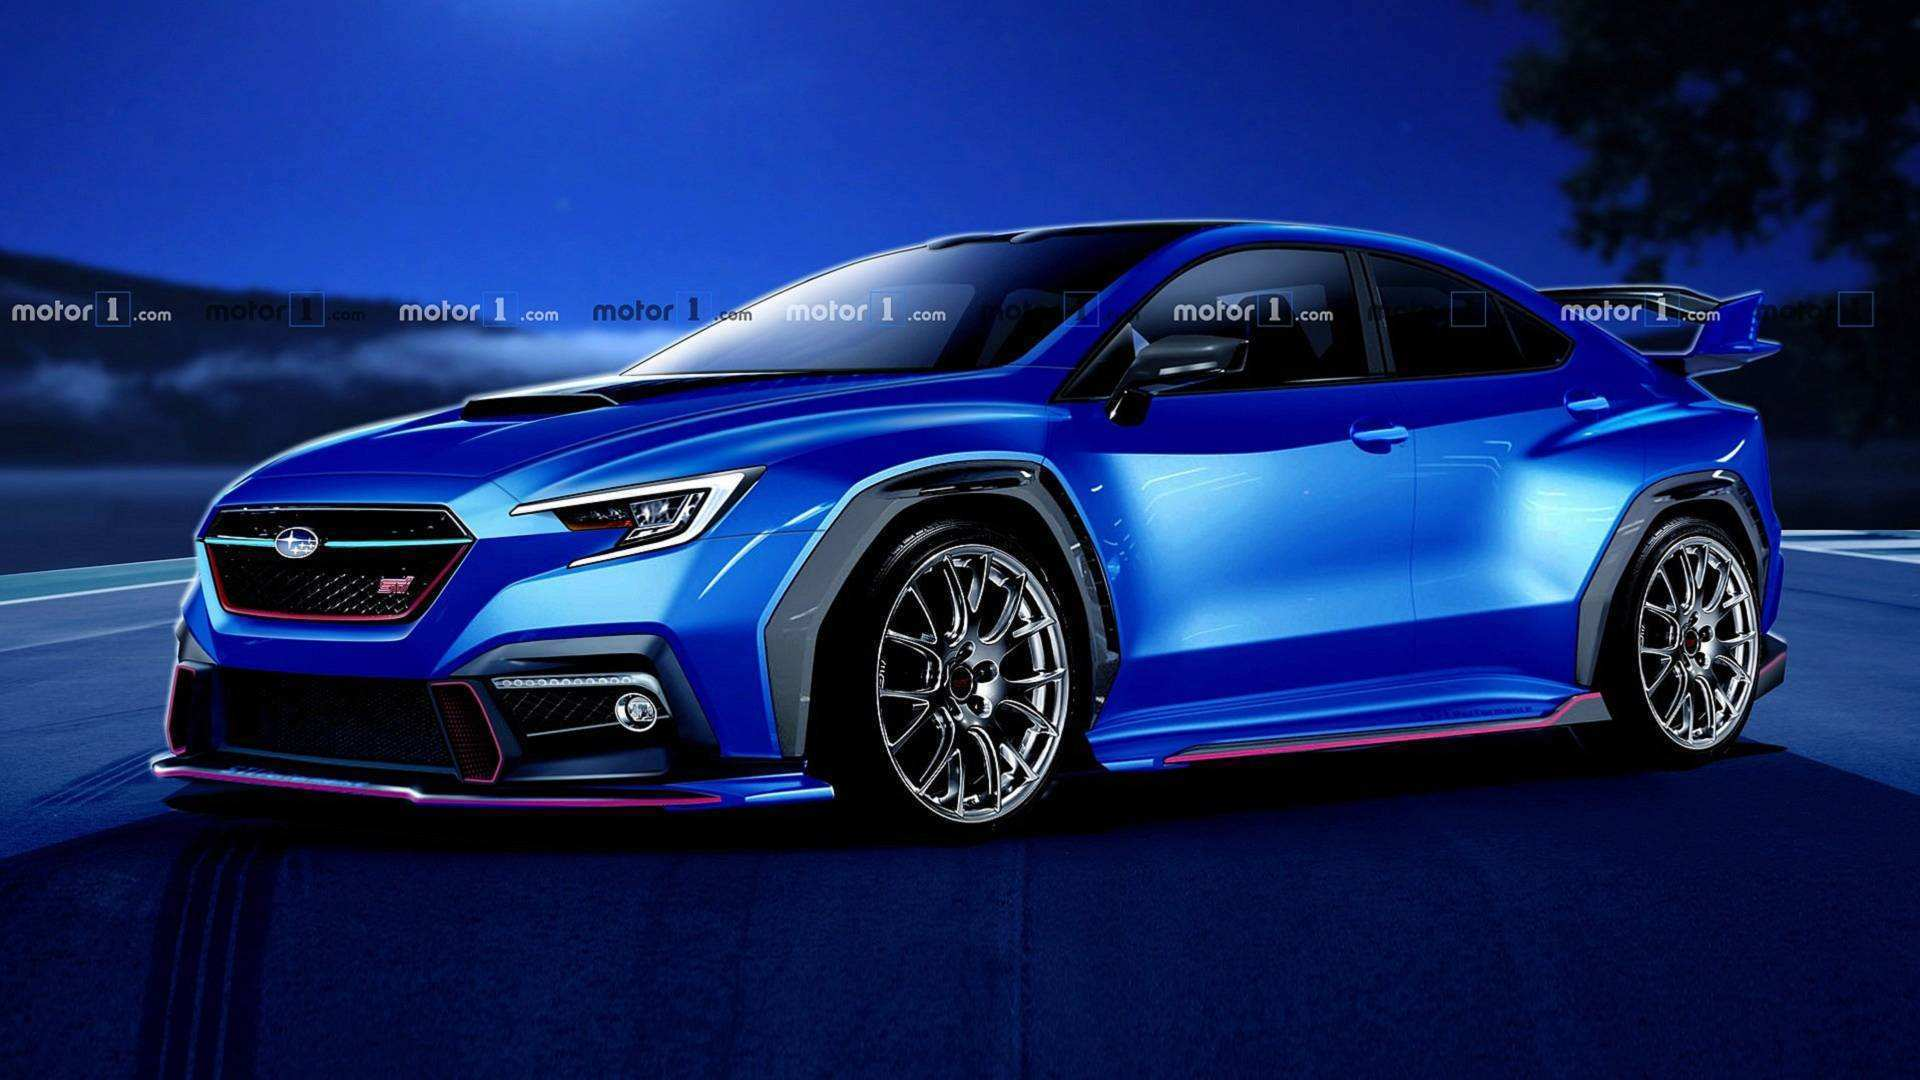 81 New Subaru Impreza Wrx 2020 Spy Shoot